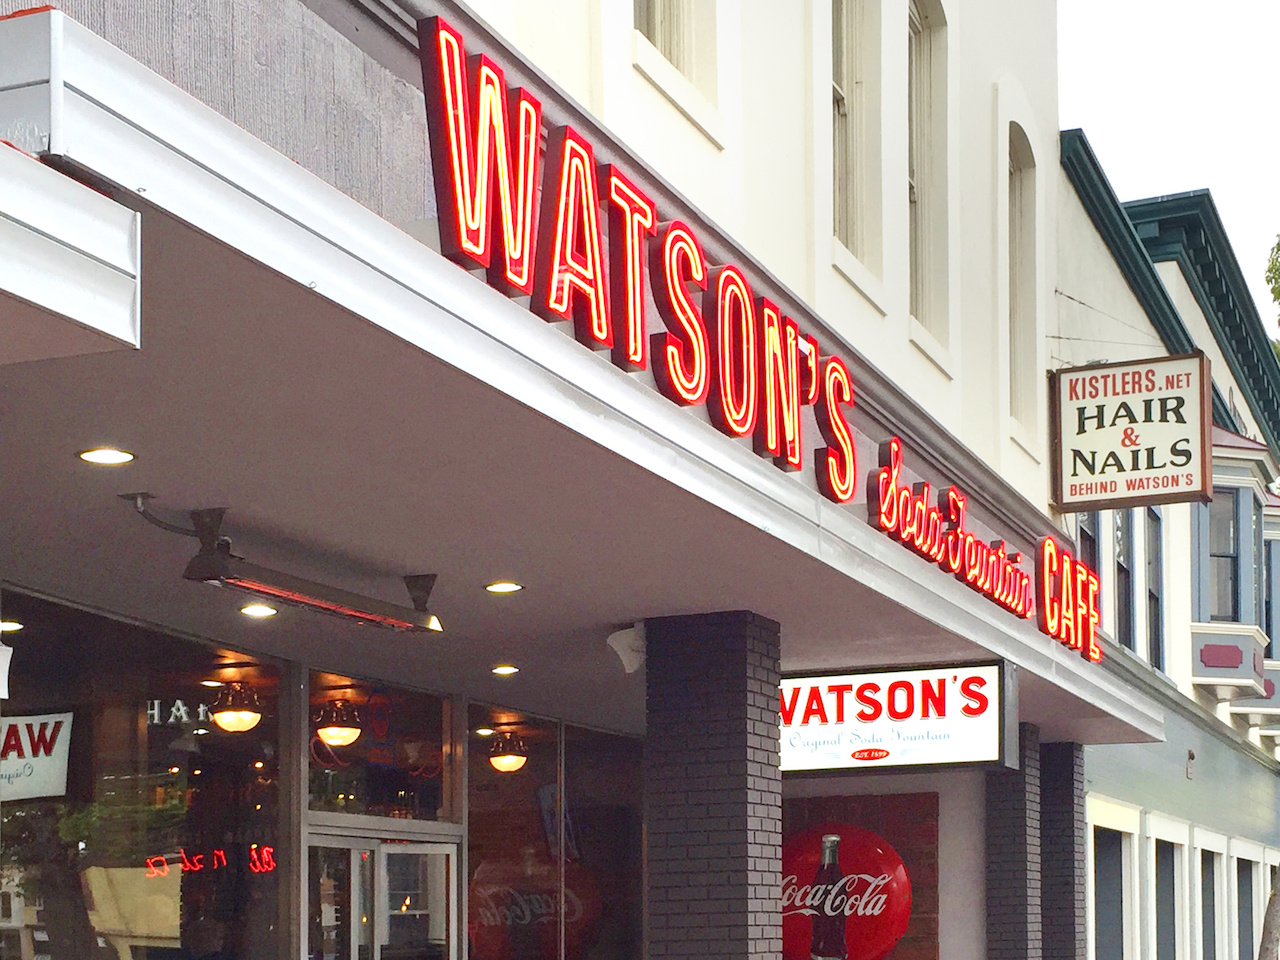 Watson's has the old-timey charm of a vintage pharmacy setting for the main restaurant.....